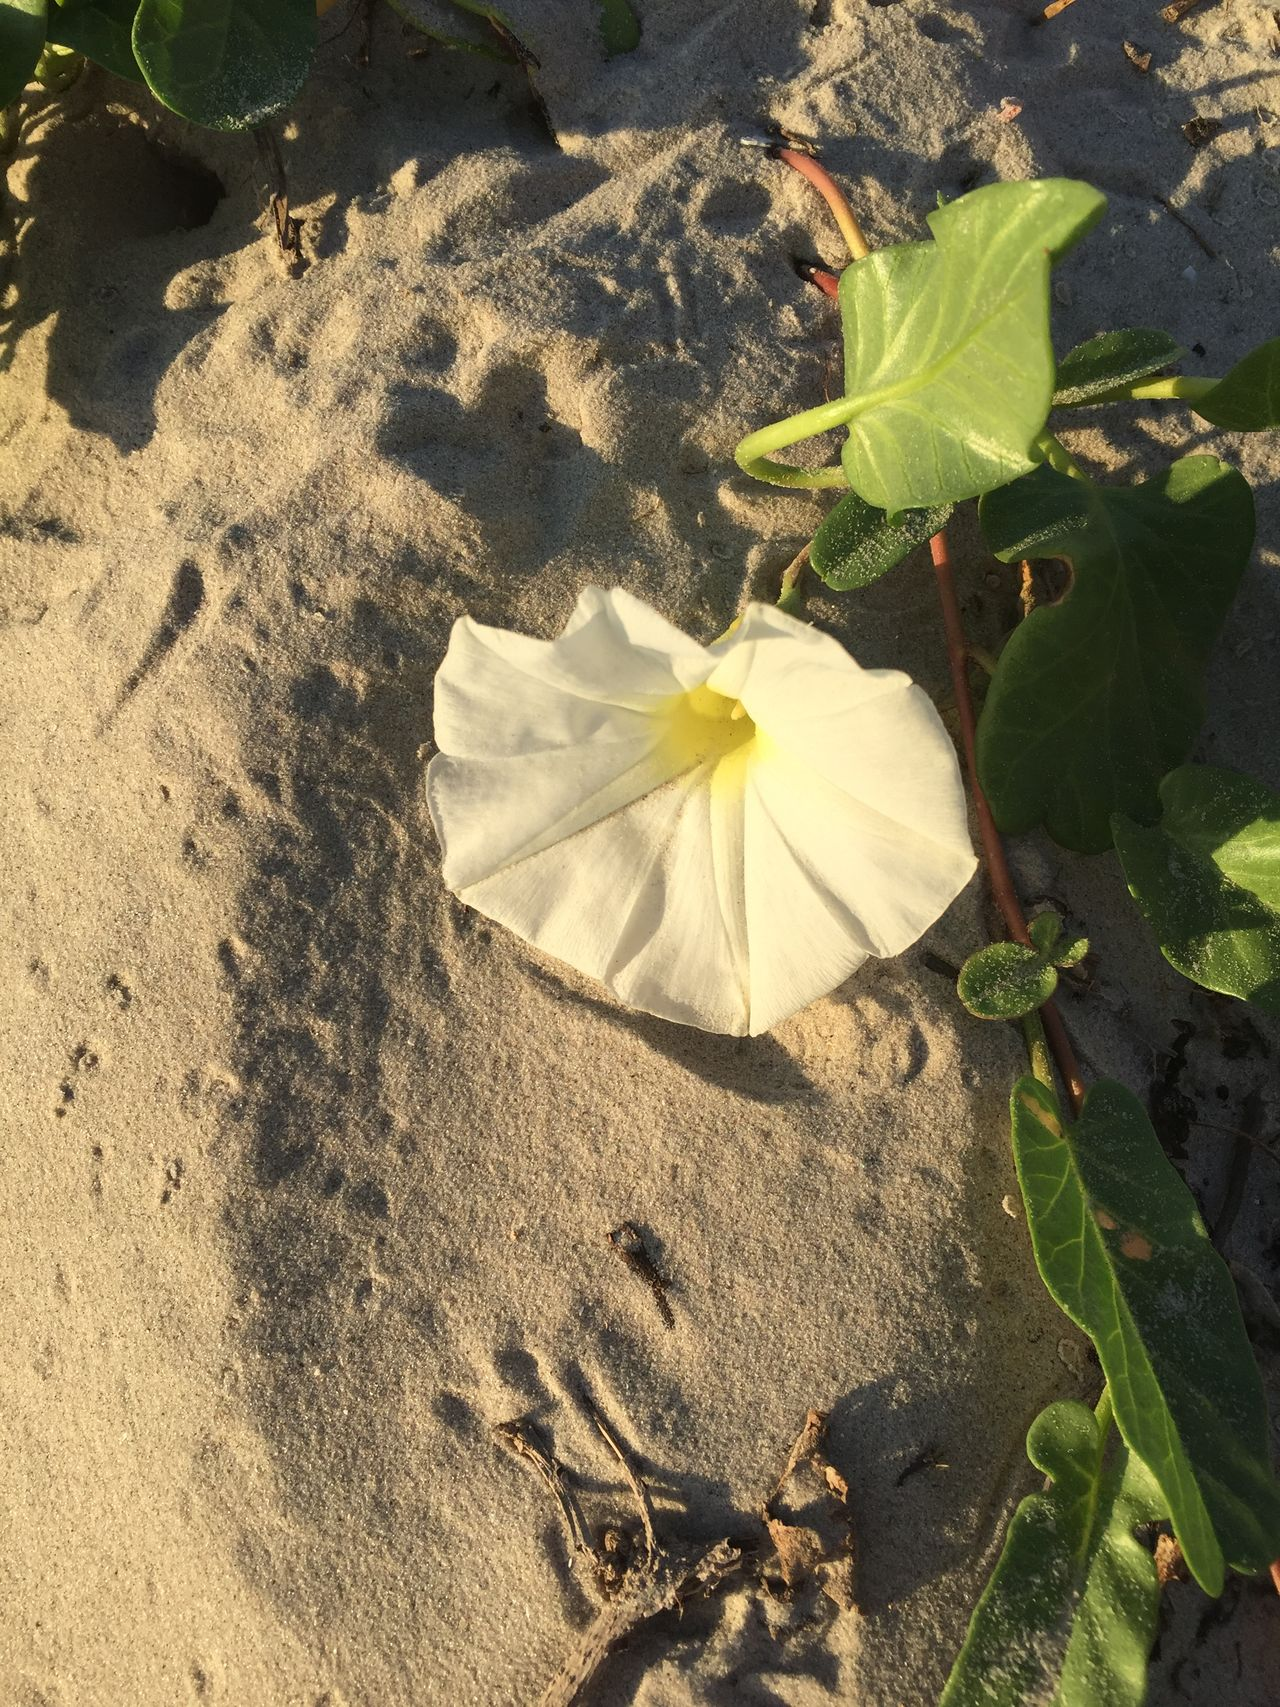 Sand dune posies 🌸 Beauty In Nature Flower In The Dunes High Angle View Leaf Nature No People Plant Sand Sunlight